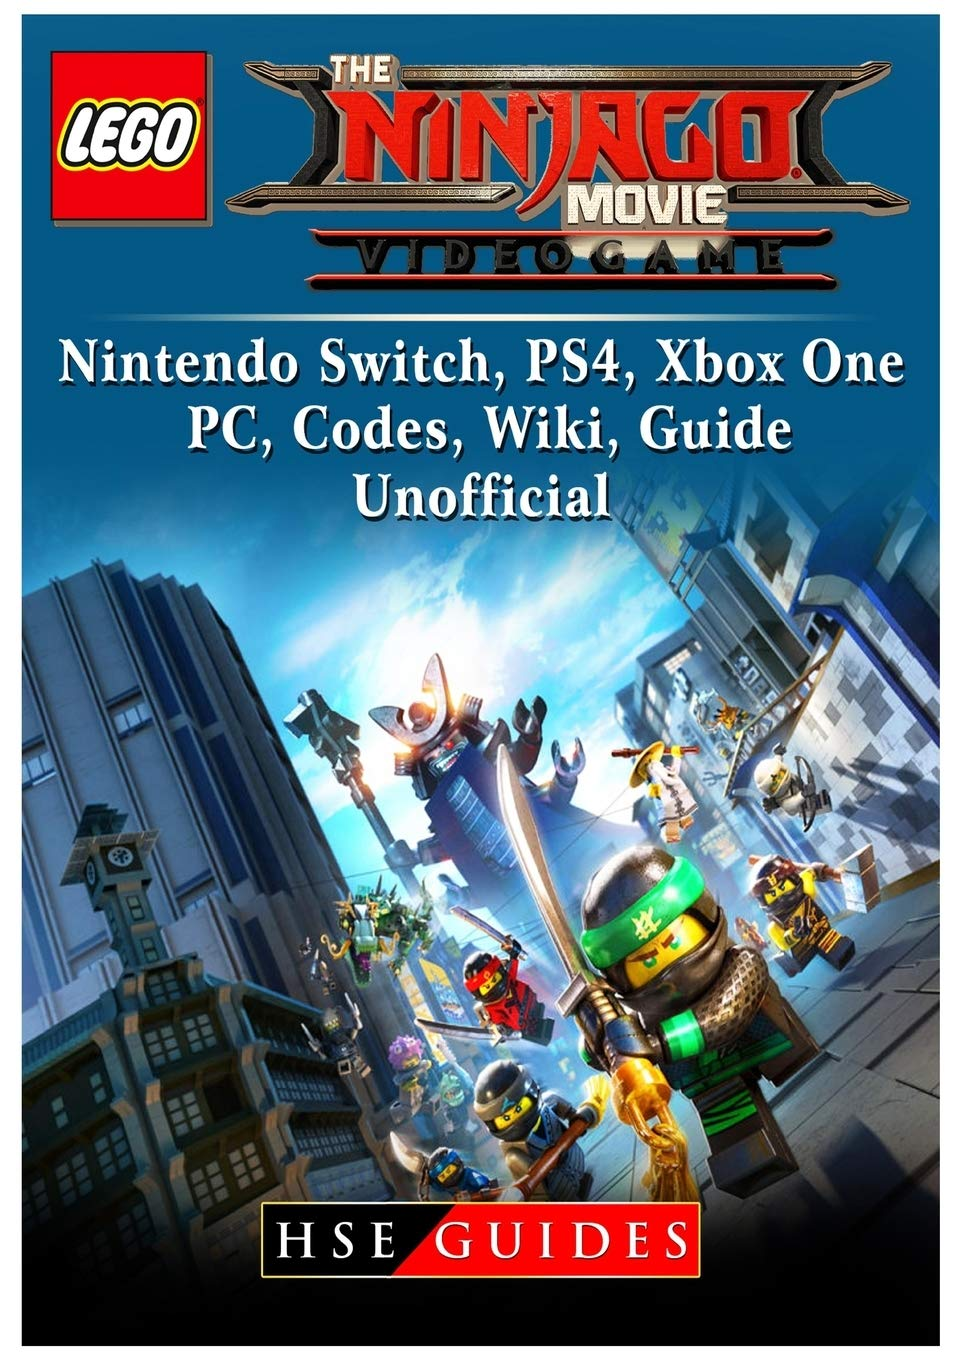 The Lego Ninjago Movie Video Game, Nintendo Switch, PS4, Xbox One, PC, Codes, Wiki, Guide Unofficial: Amazon.es: Guides, HSE: Libros en idiomas extranjeros